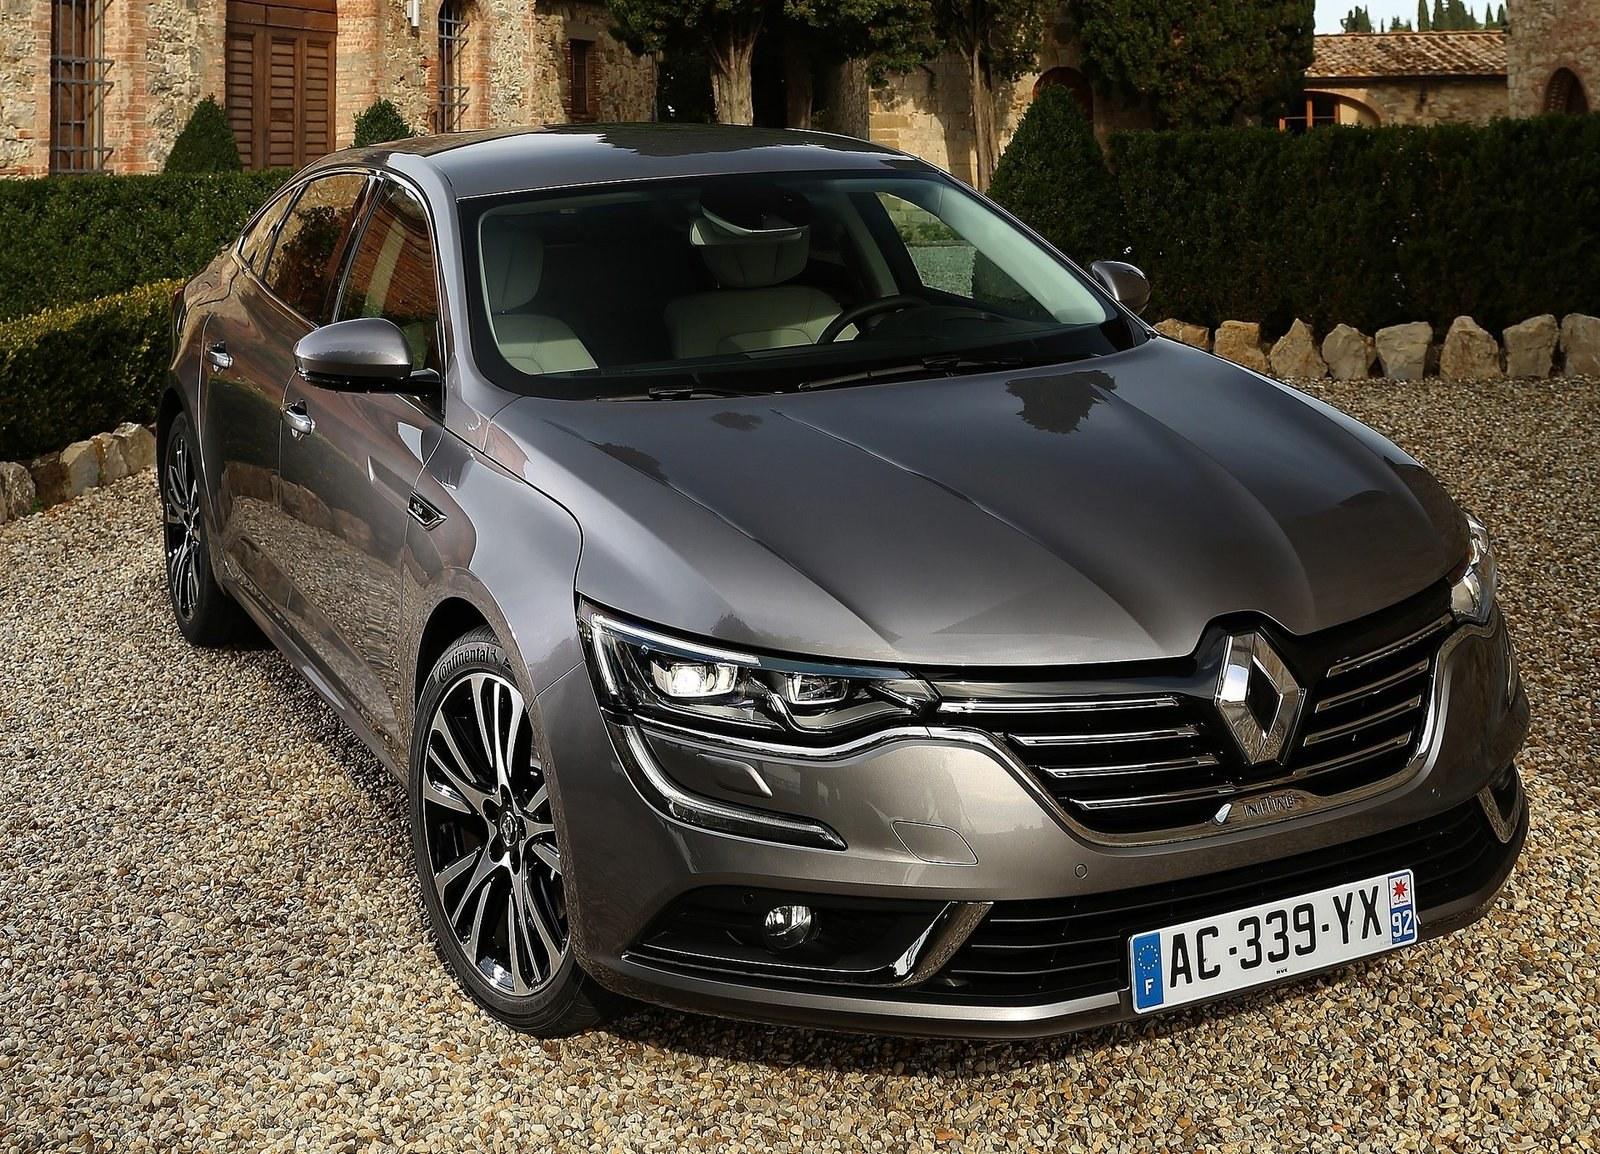 2016 Renault Talisman Front View (View 12 of 14)